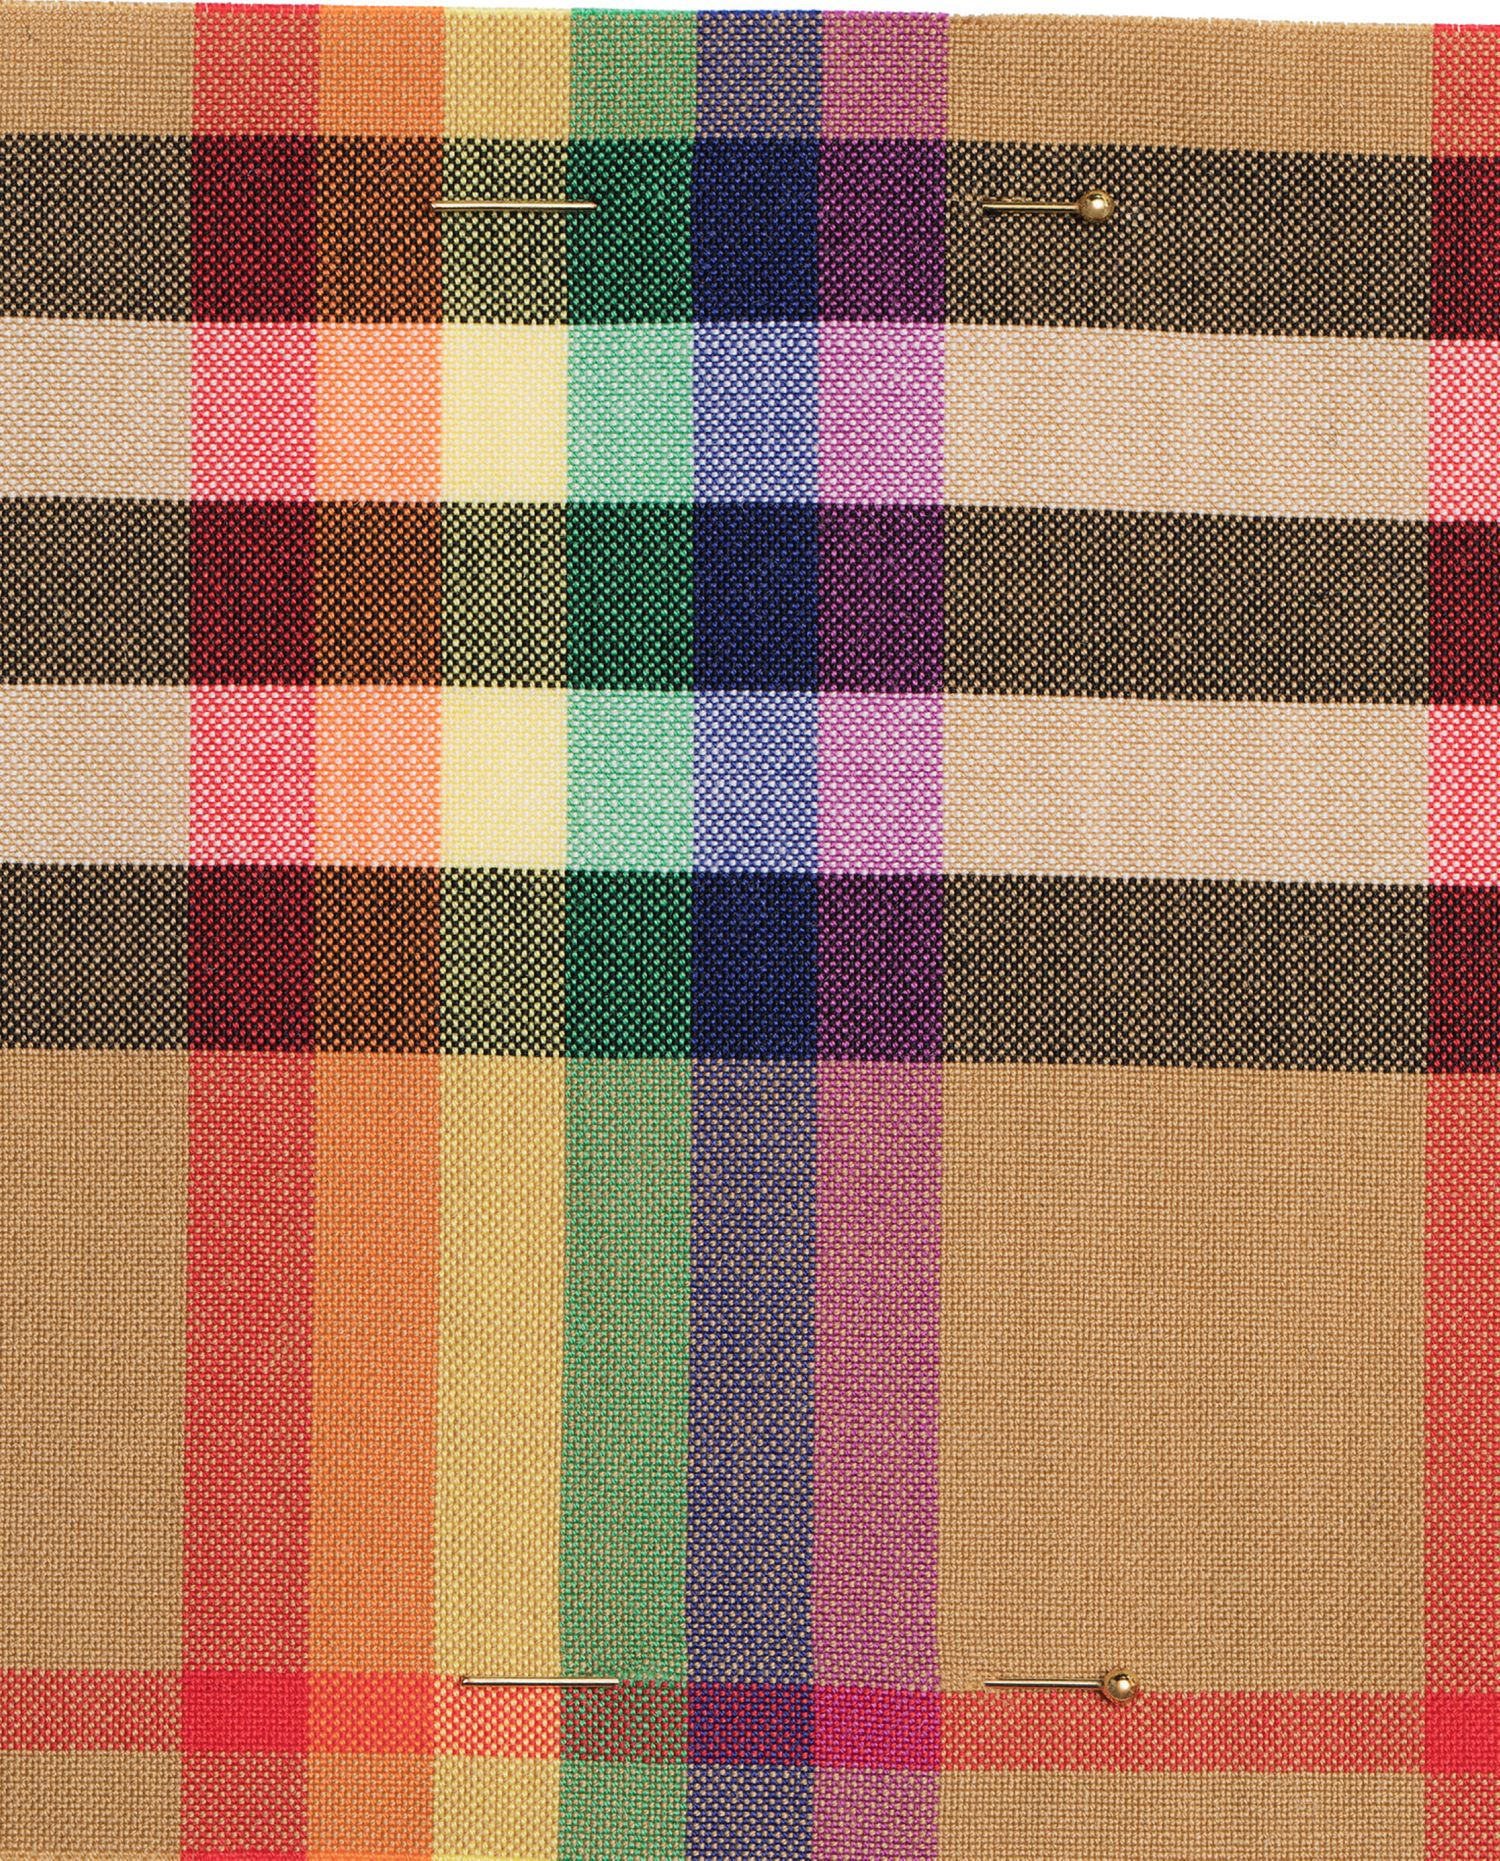 Burberry celebrates diversity and inclusivity with the Rainbow Vintage check throughout its February collection and makes donations to three leading organisations – the Albert Kennedy Trust, the Trevor Project and ILGA – all dedicated to supporting LGBTQ+ youth around the world.